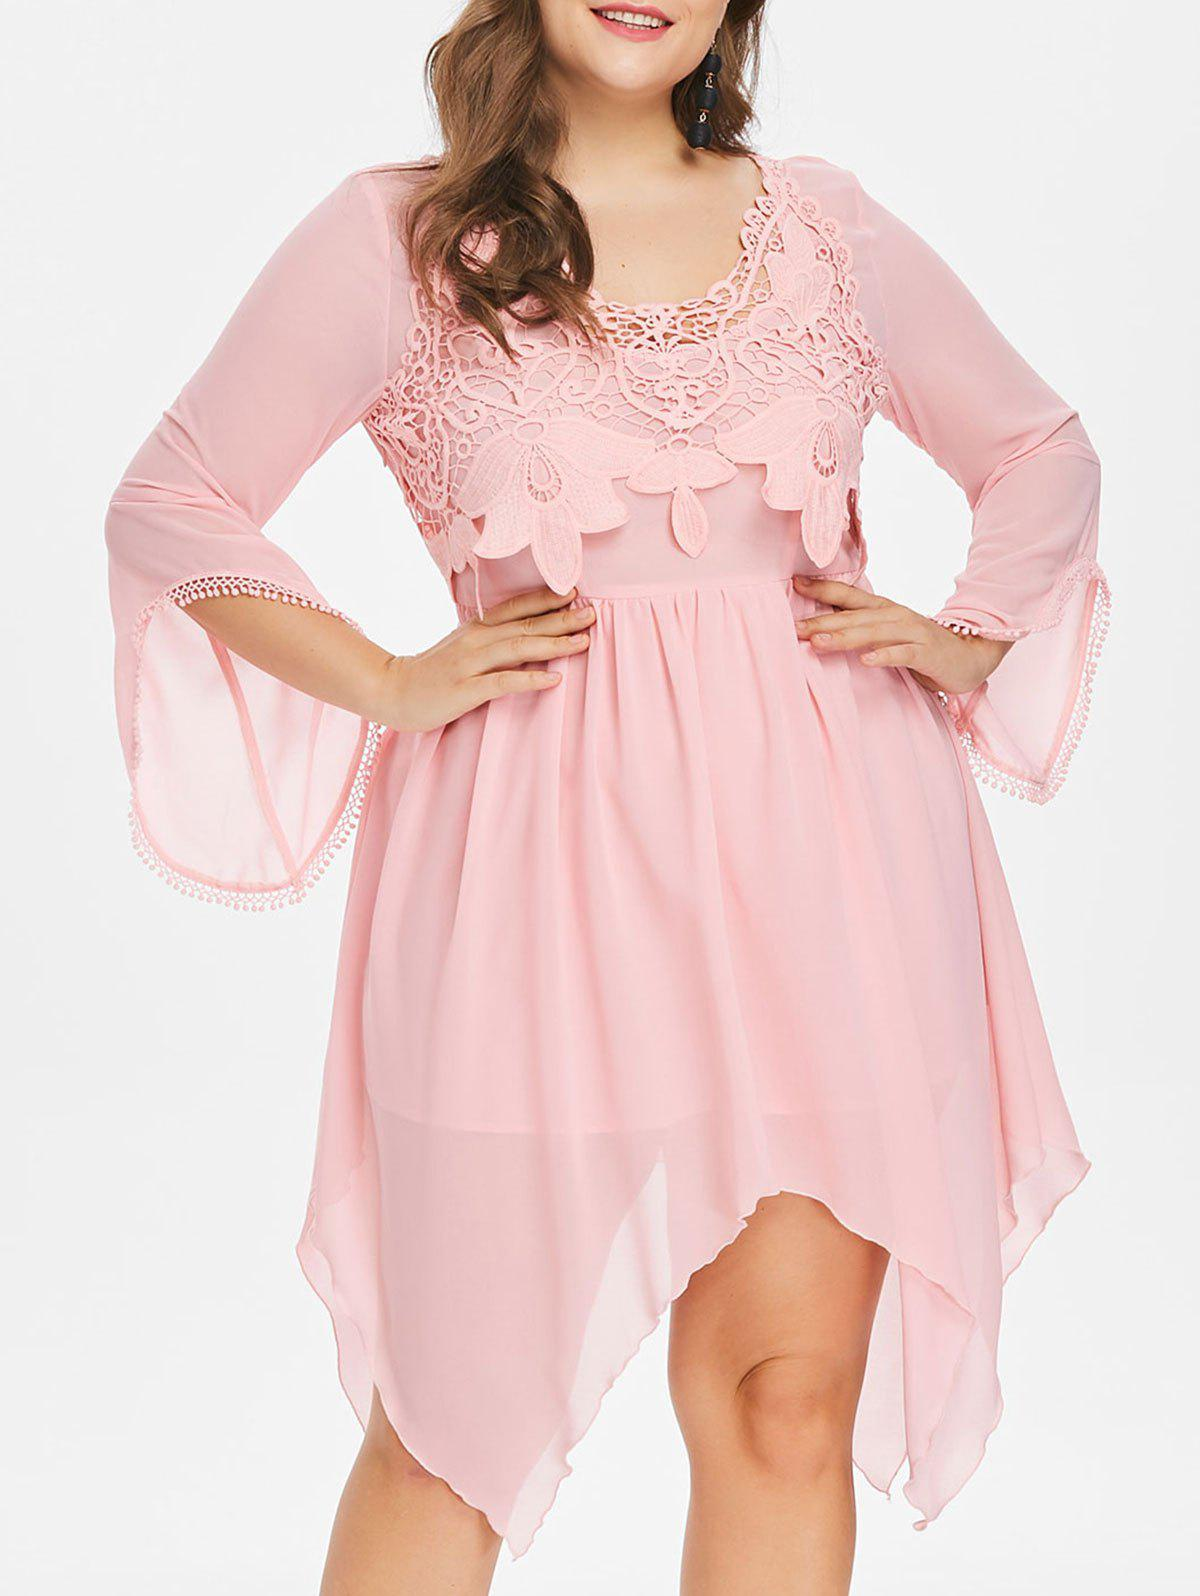 50% OFF] Plus Size Flared Long Sleeve Handkerchief Dress | Rosegal